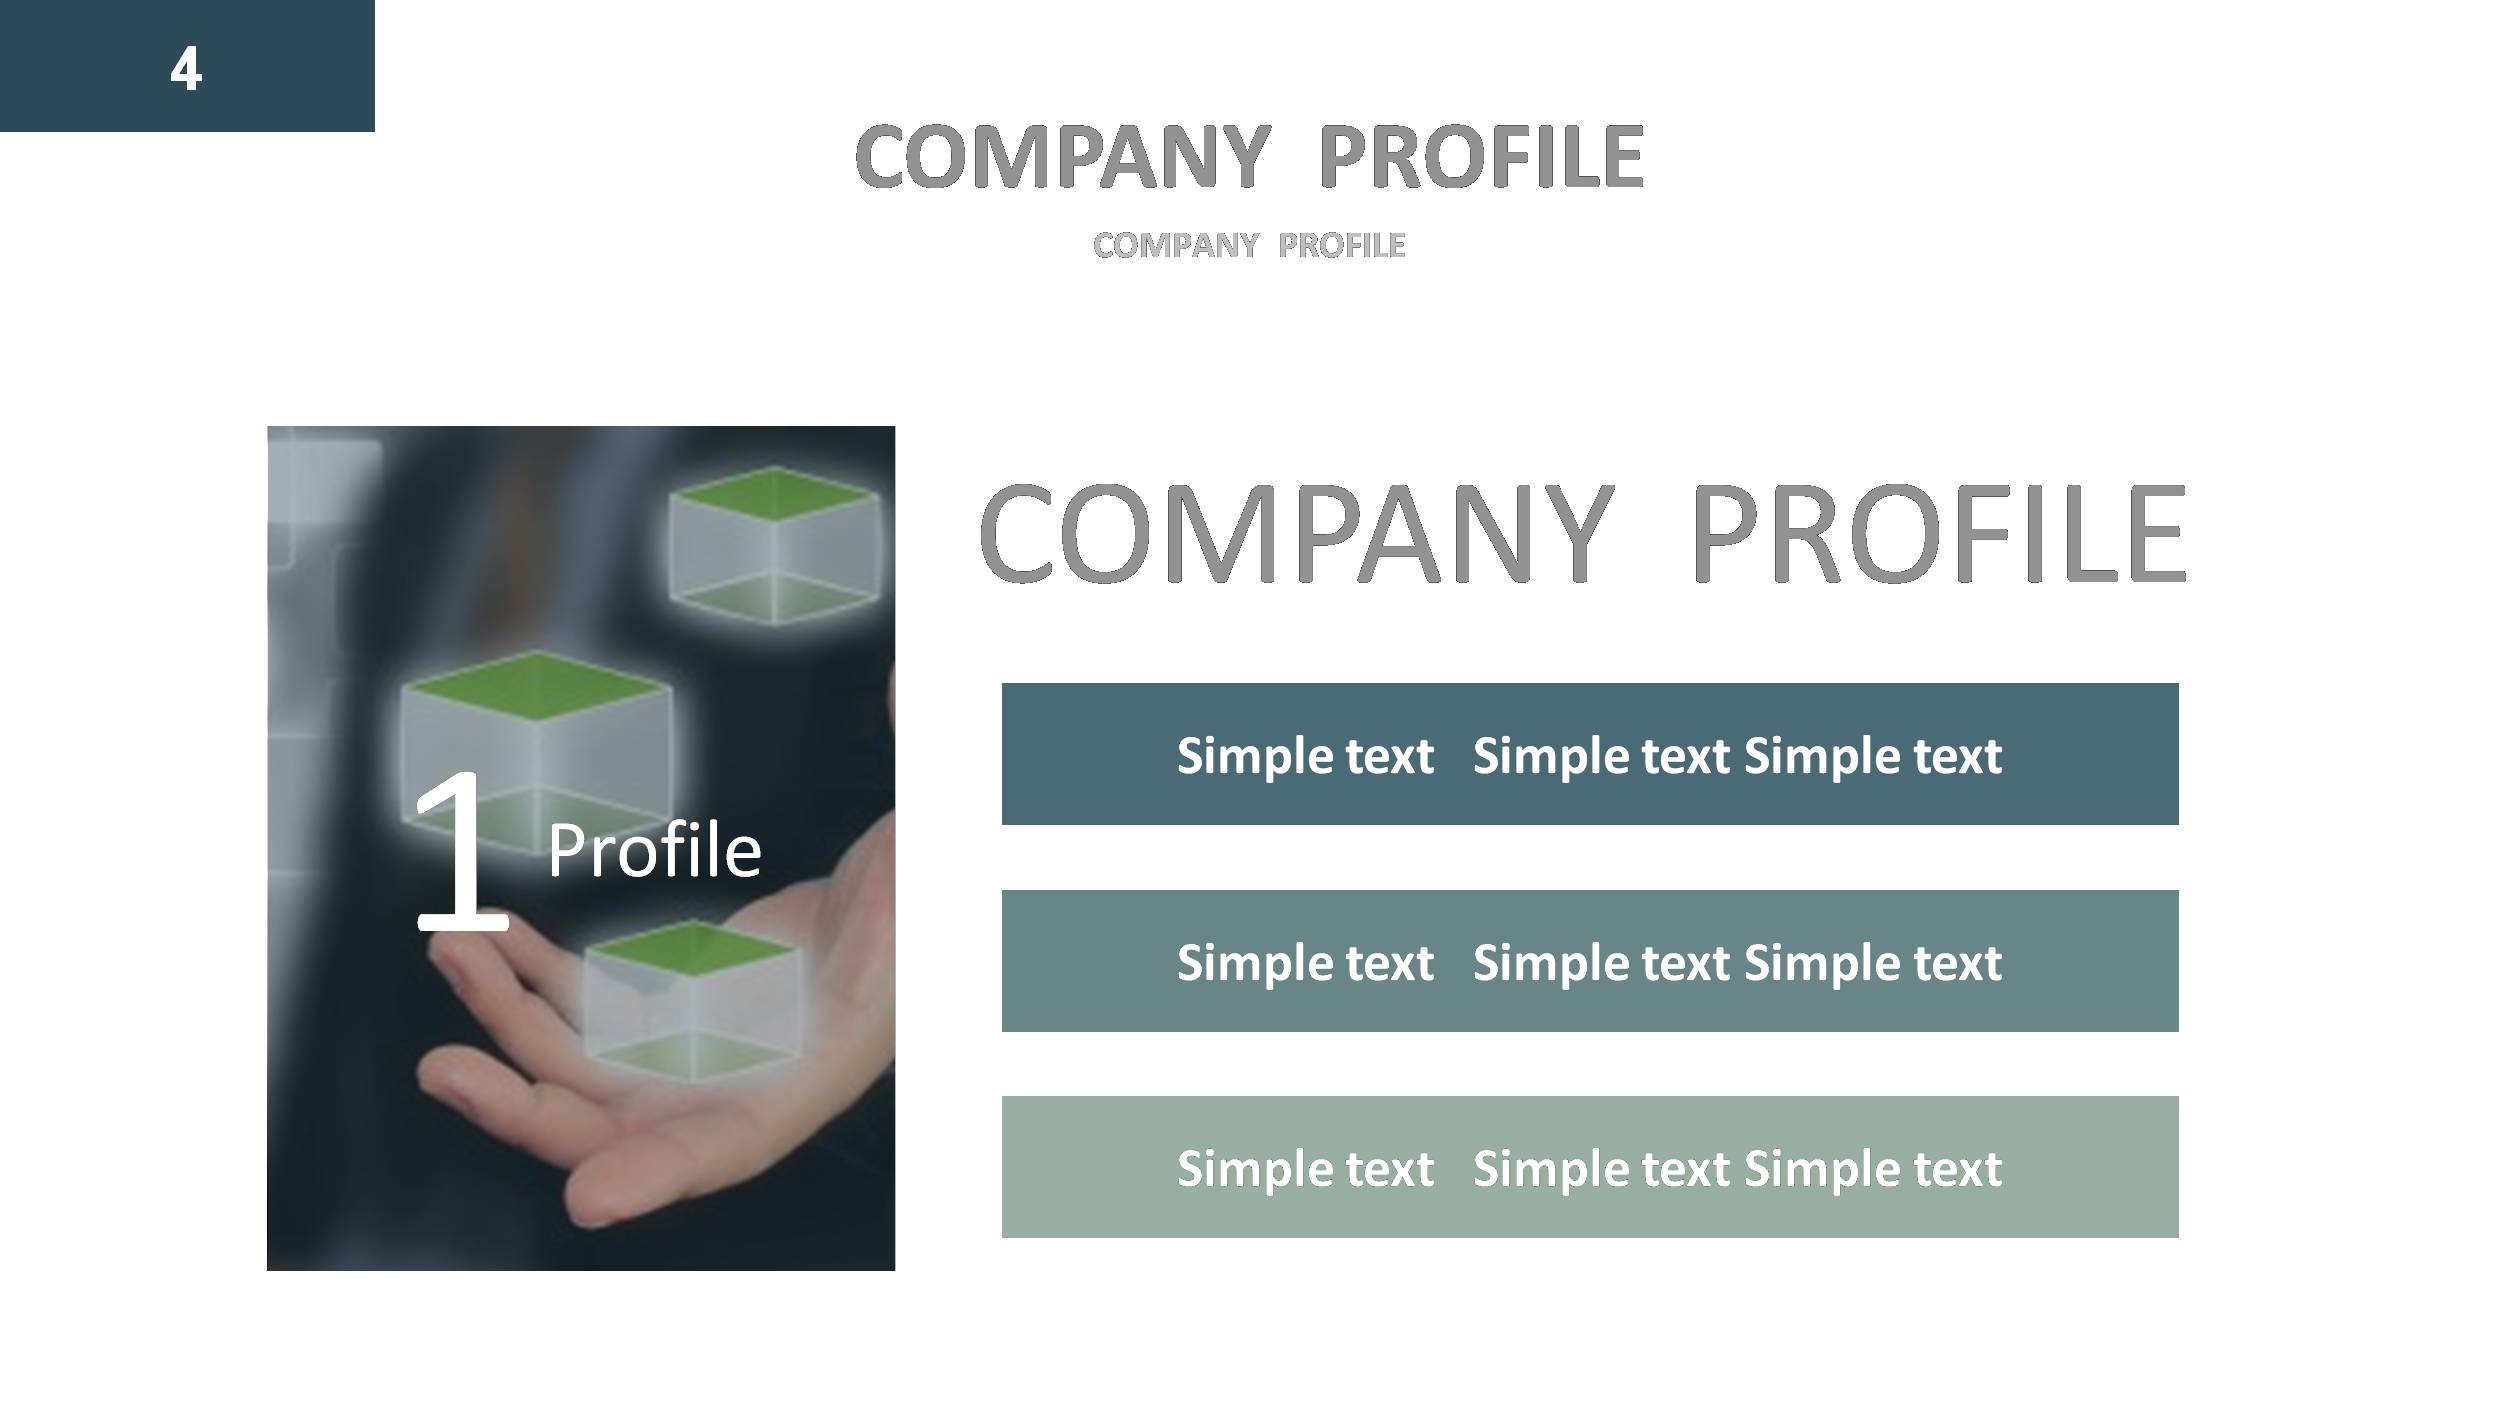 Company profile Google Slides Presentation Template by GardeniaDesign